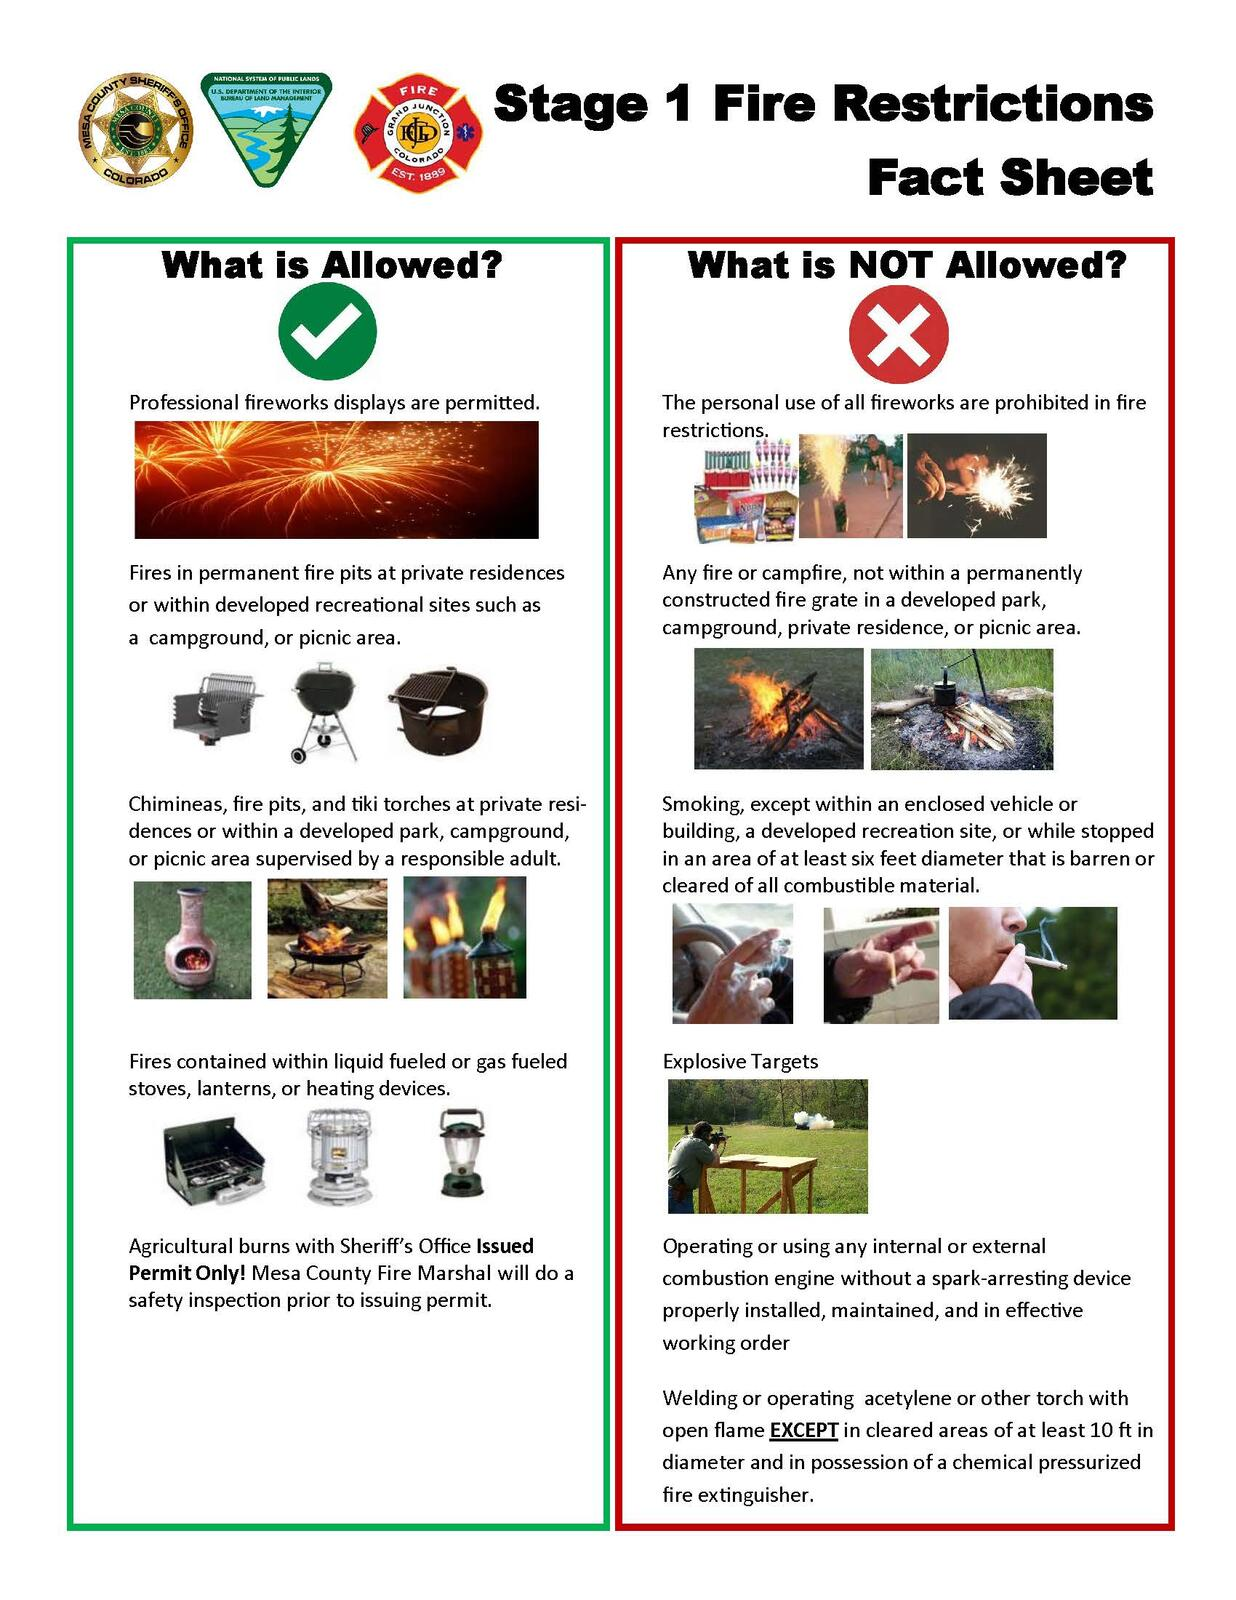 Stage 1 Fire Restrictions Now in Effect (Mesa County Sheriff's